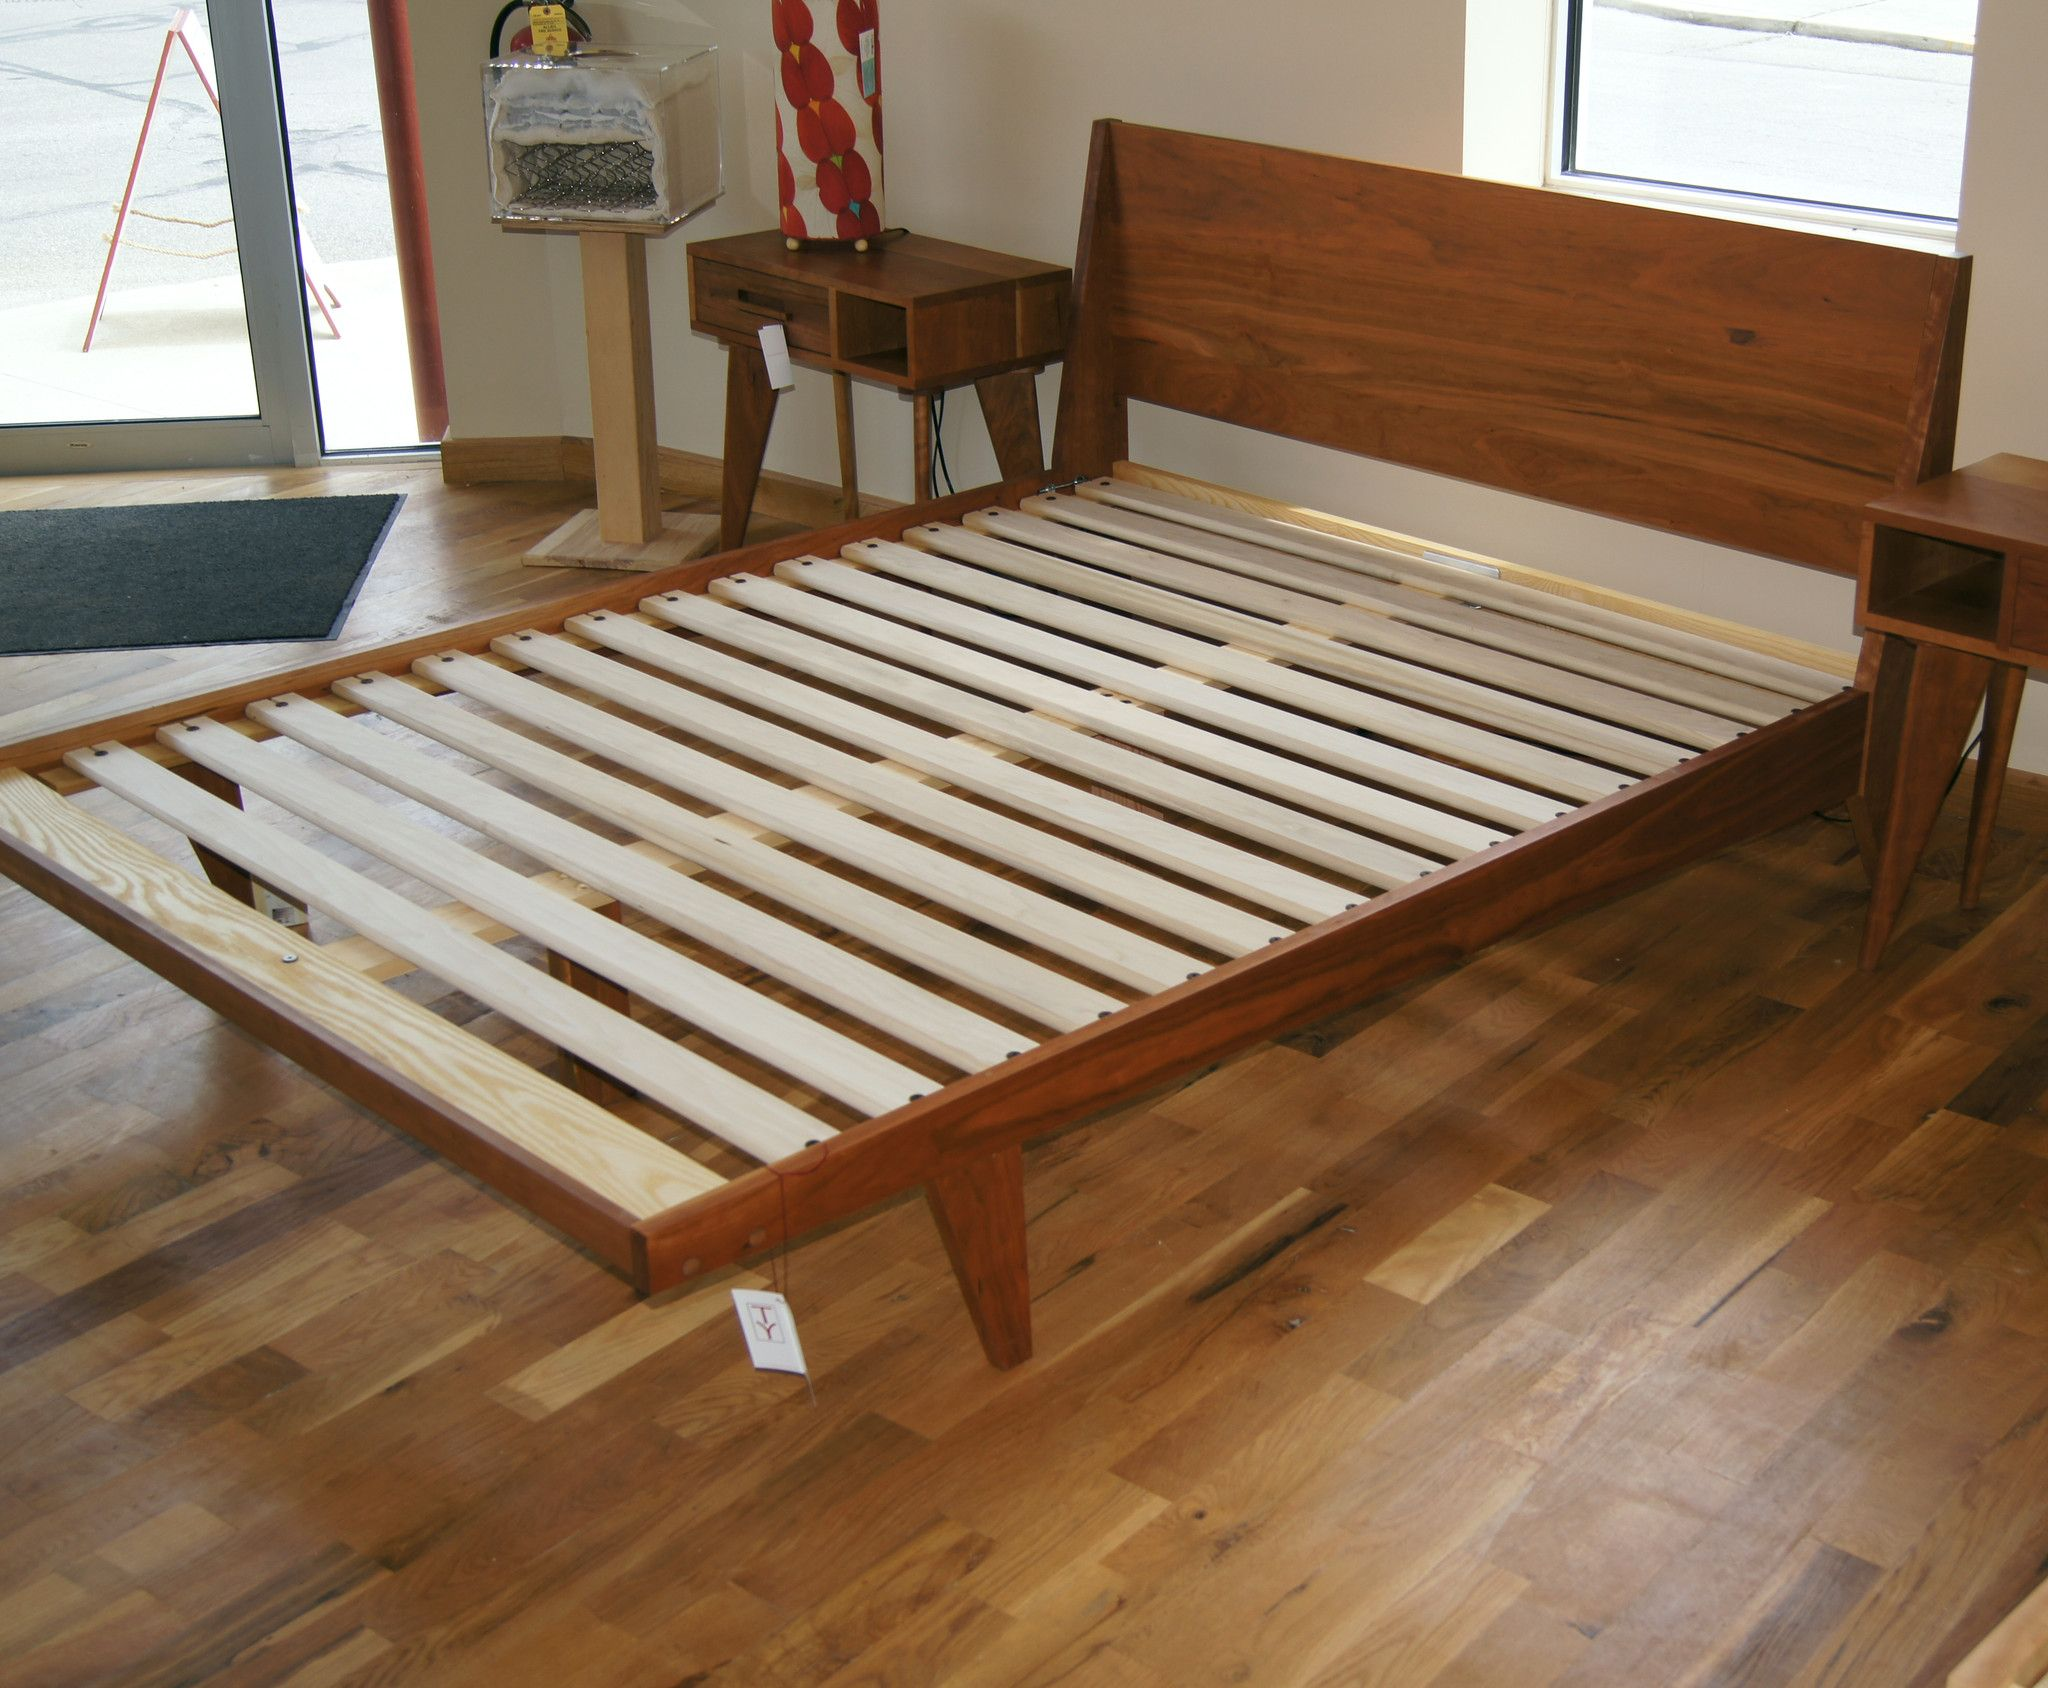 Modern  ONE  Platform Bed  Handmade Mid Century Modern Bed  Solid Wood with  Organic Finish. Modern  ONE  Platform Bed  Handmade Mid Century Modern Bed  Solid